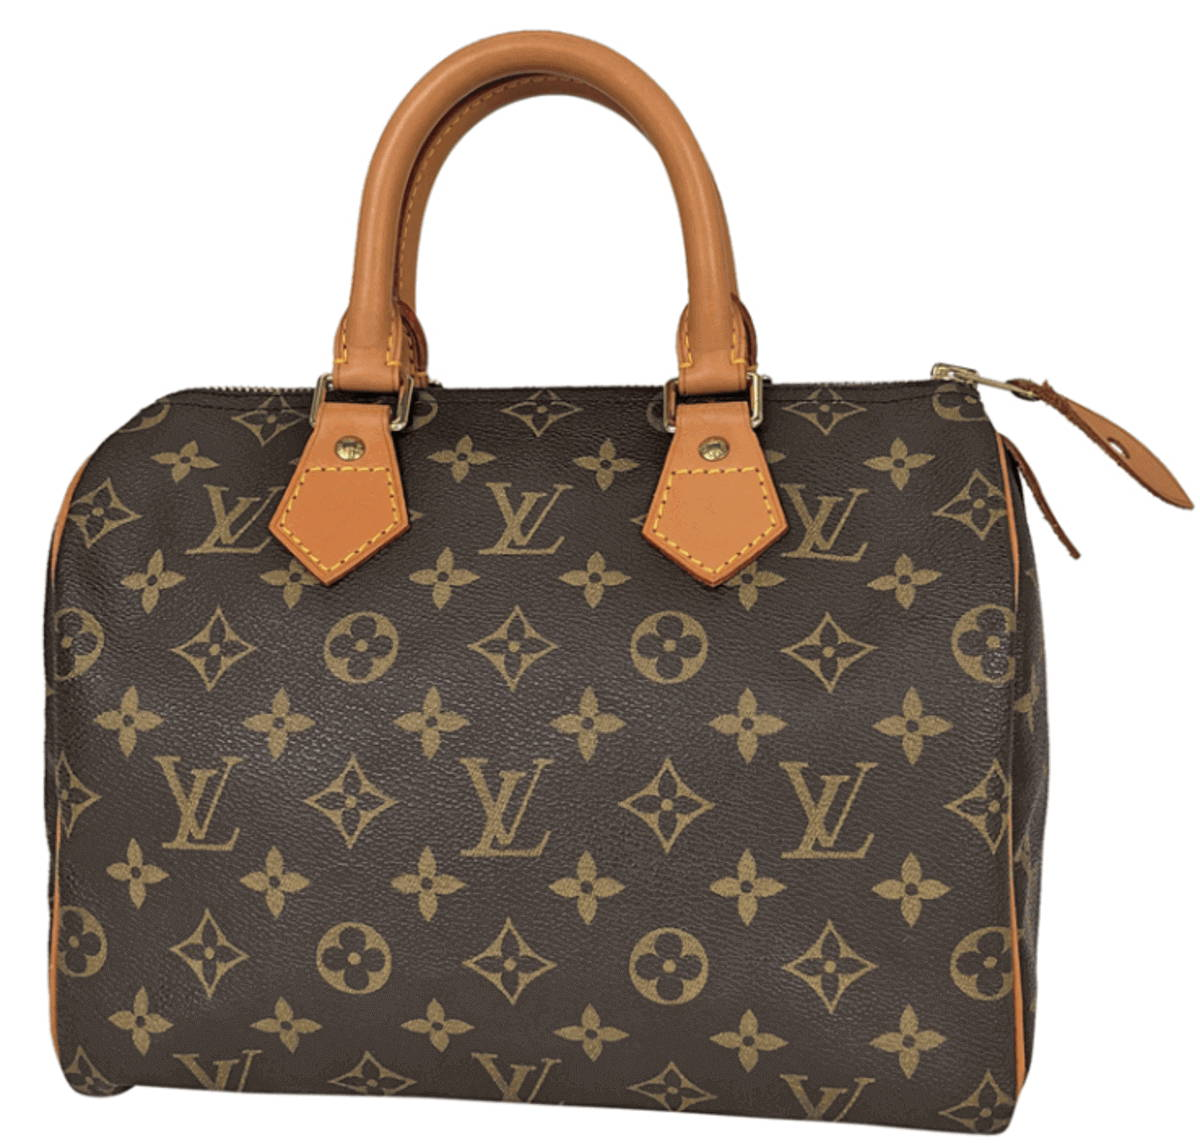 Louis Vuitton_Speedy_Usability_Commentary